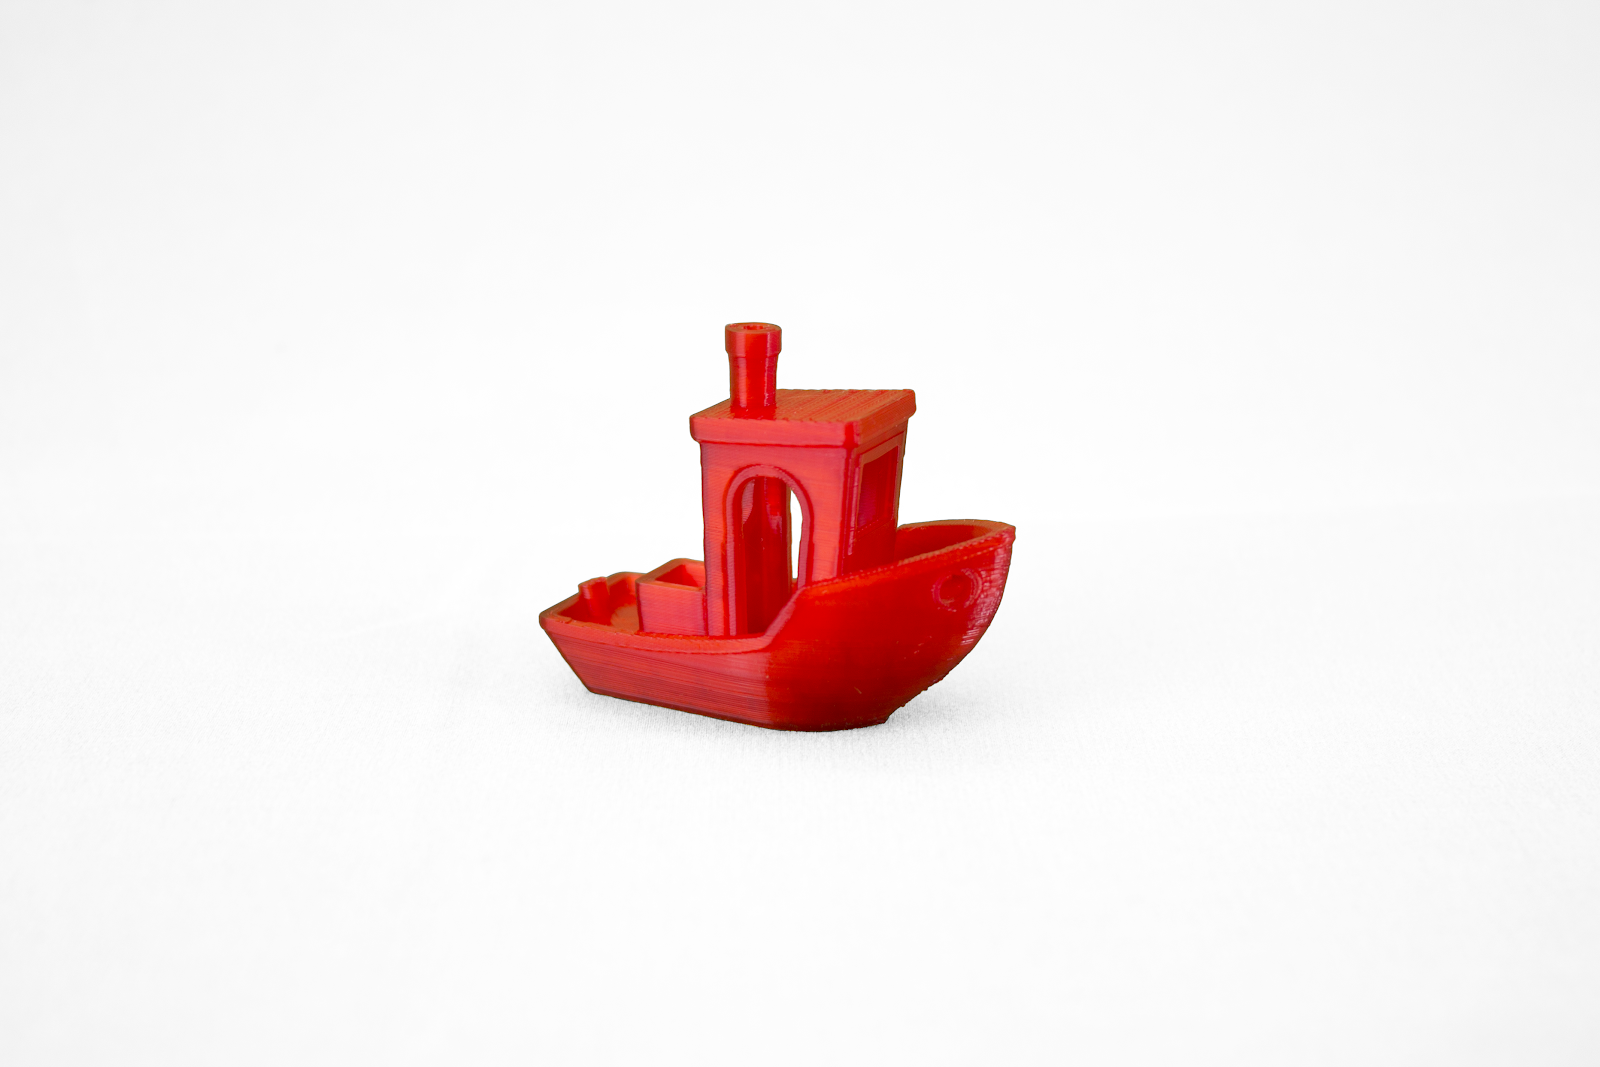 The 3D printed Benchy made on the Adventurer 3.